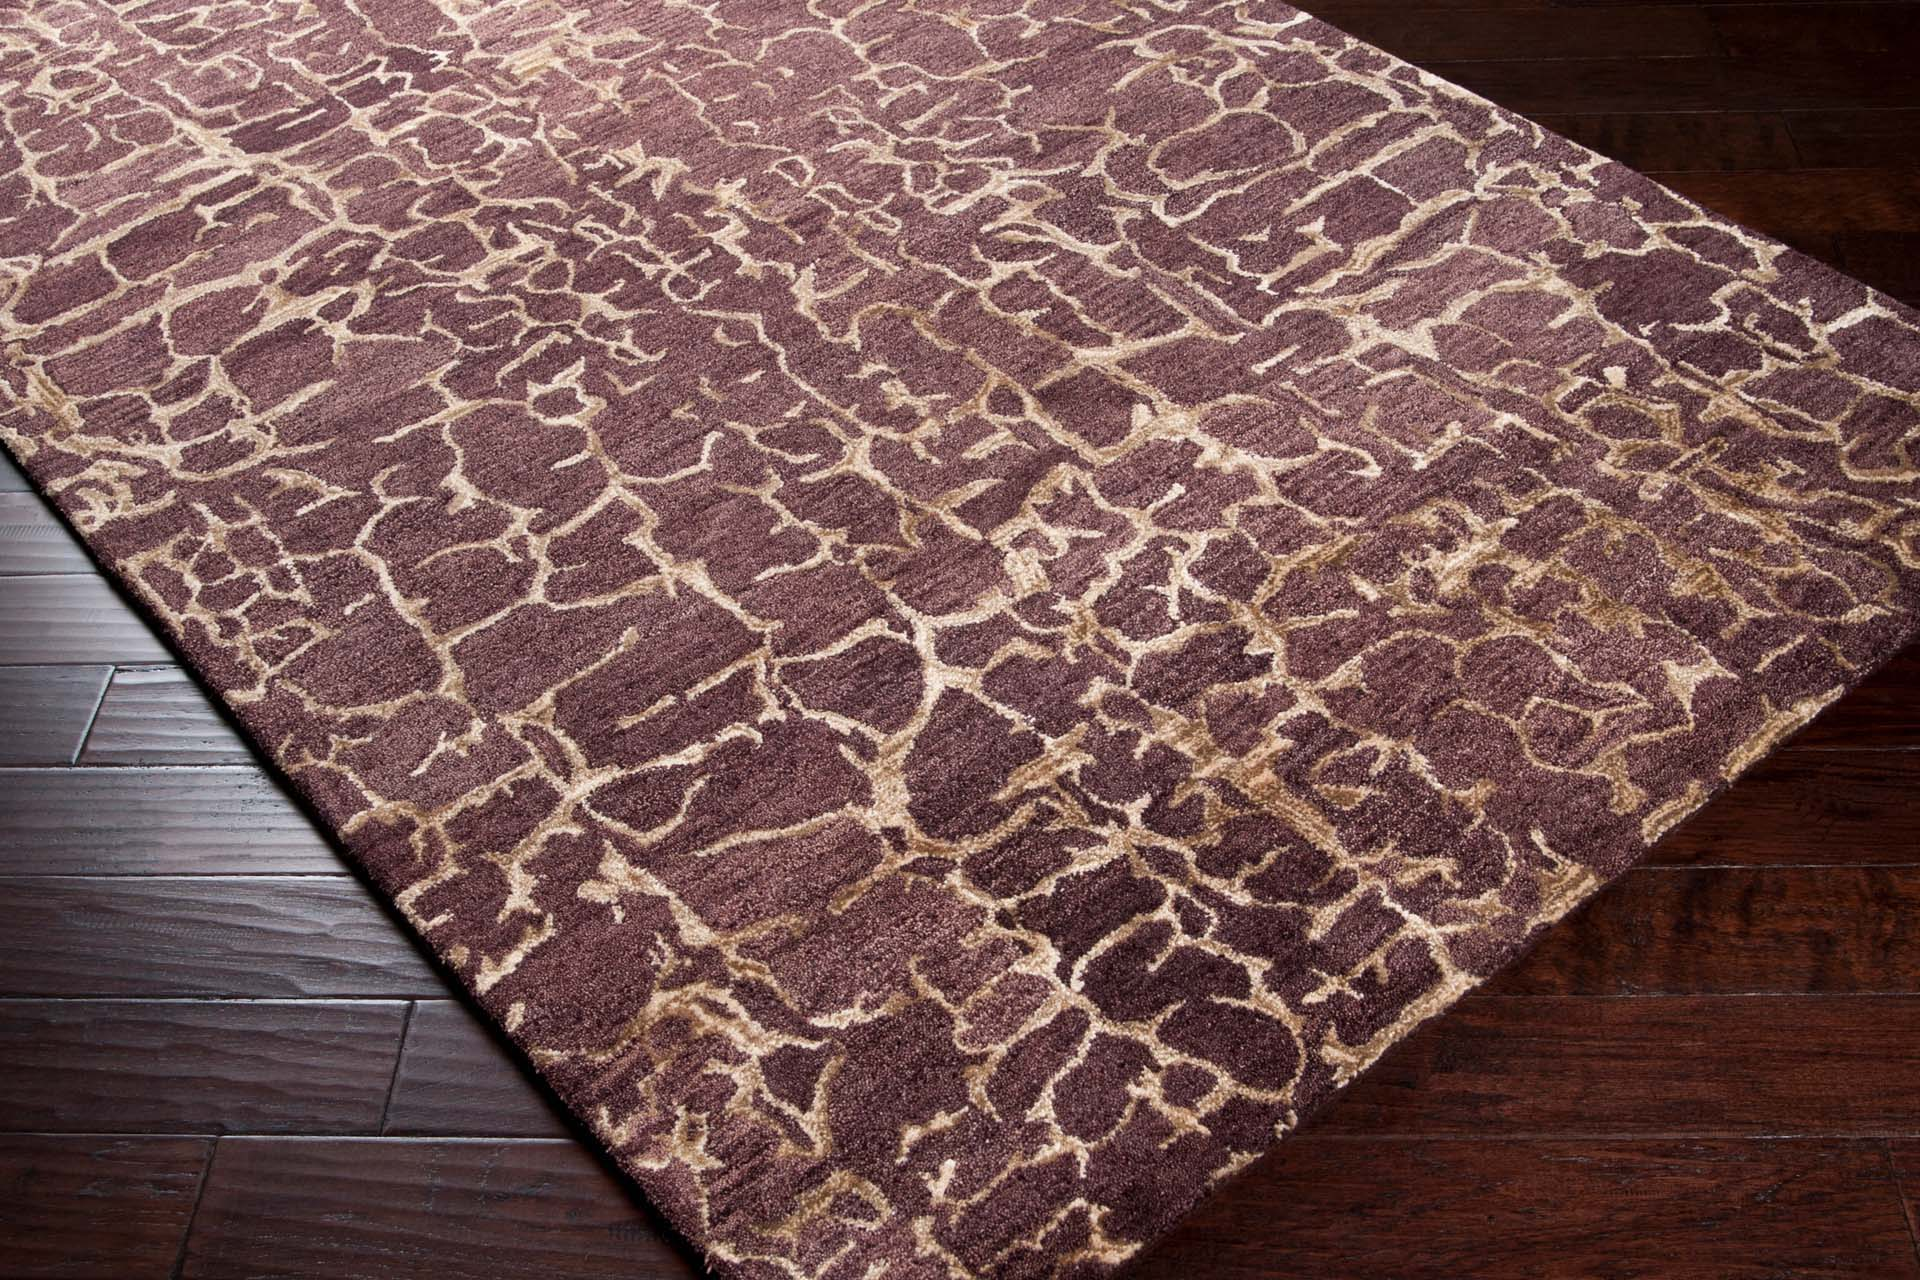 Trendy hand-tufted 8' x 11' area rug from India with brown and tan textured pattern on wood floor